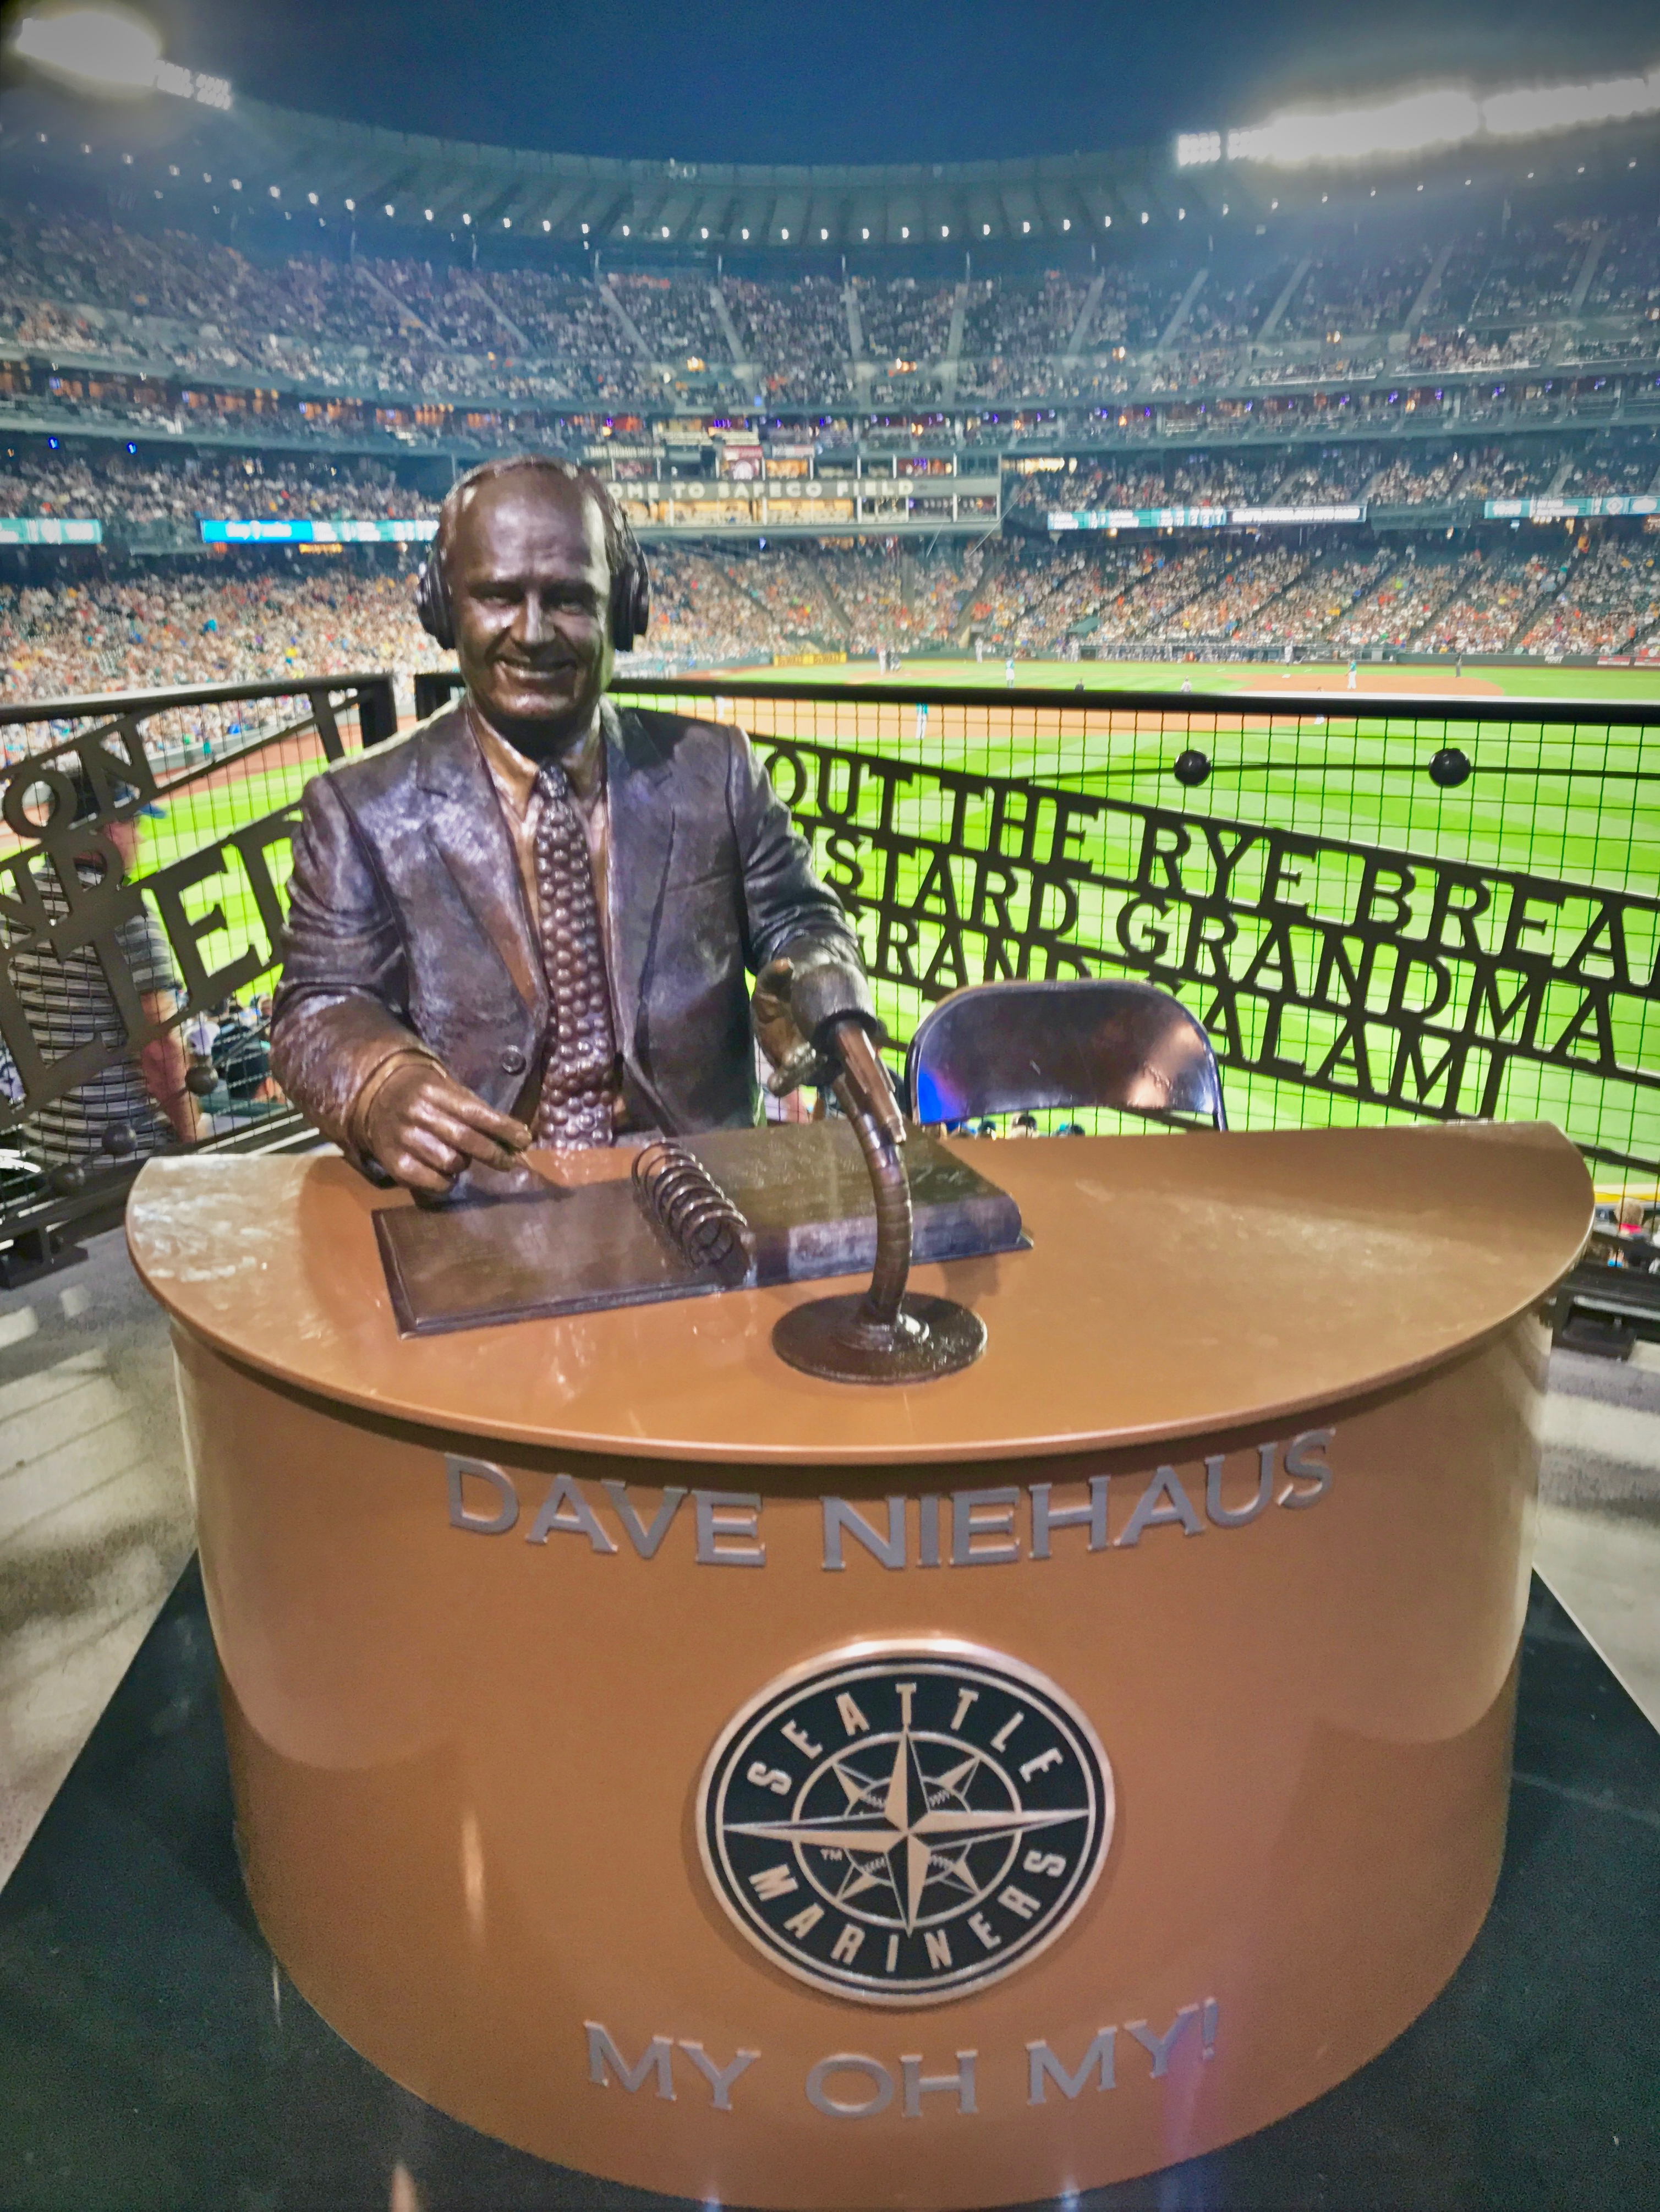 The Dave Niehaus statue at Safeco Field.  Photo by Patrick Robinson